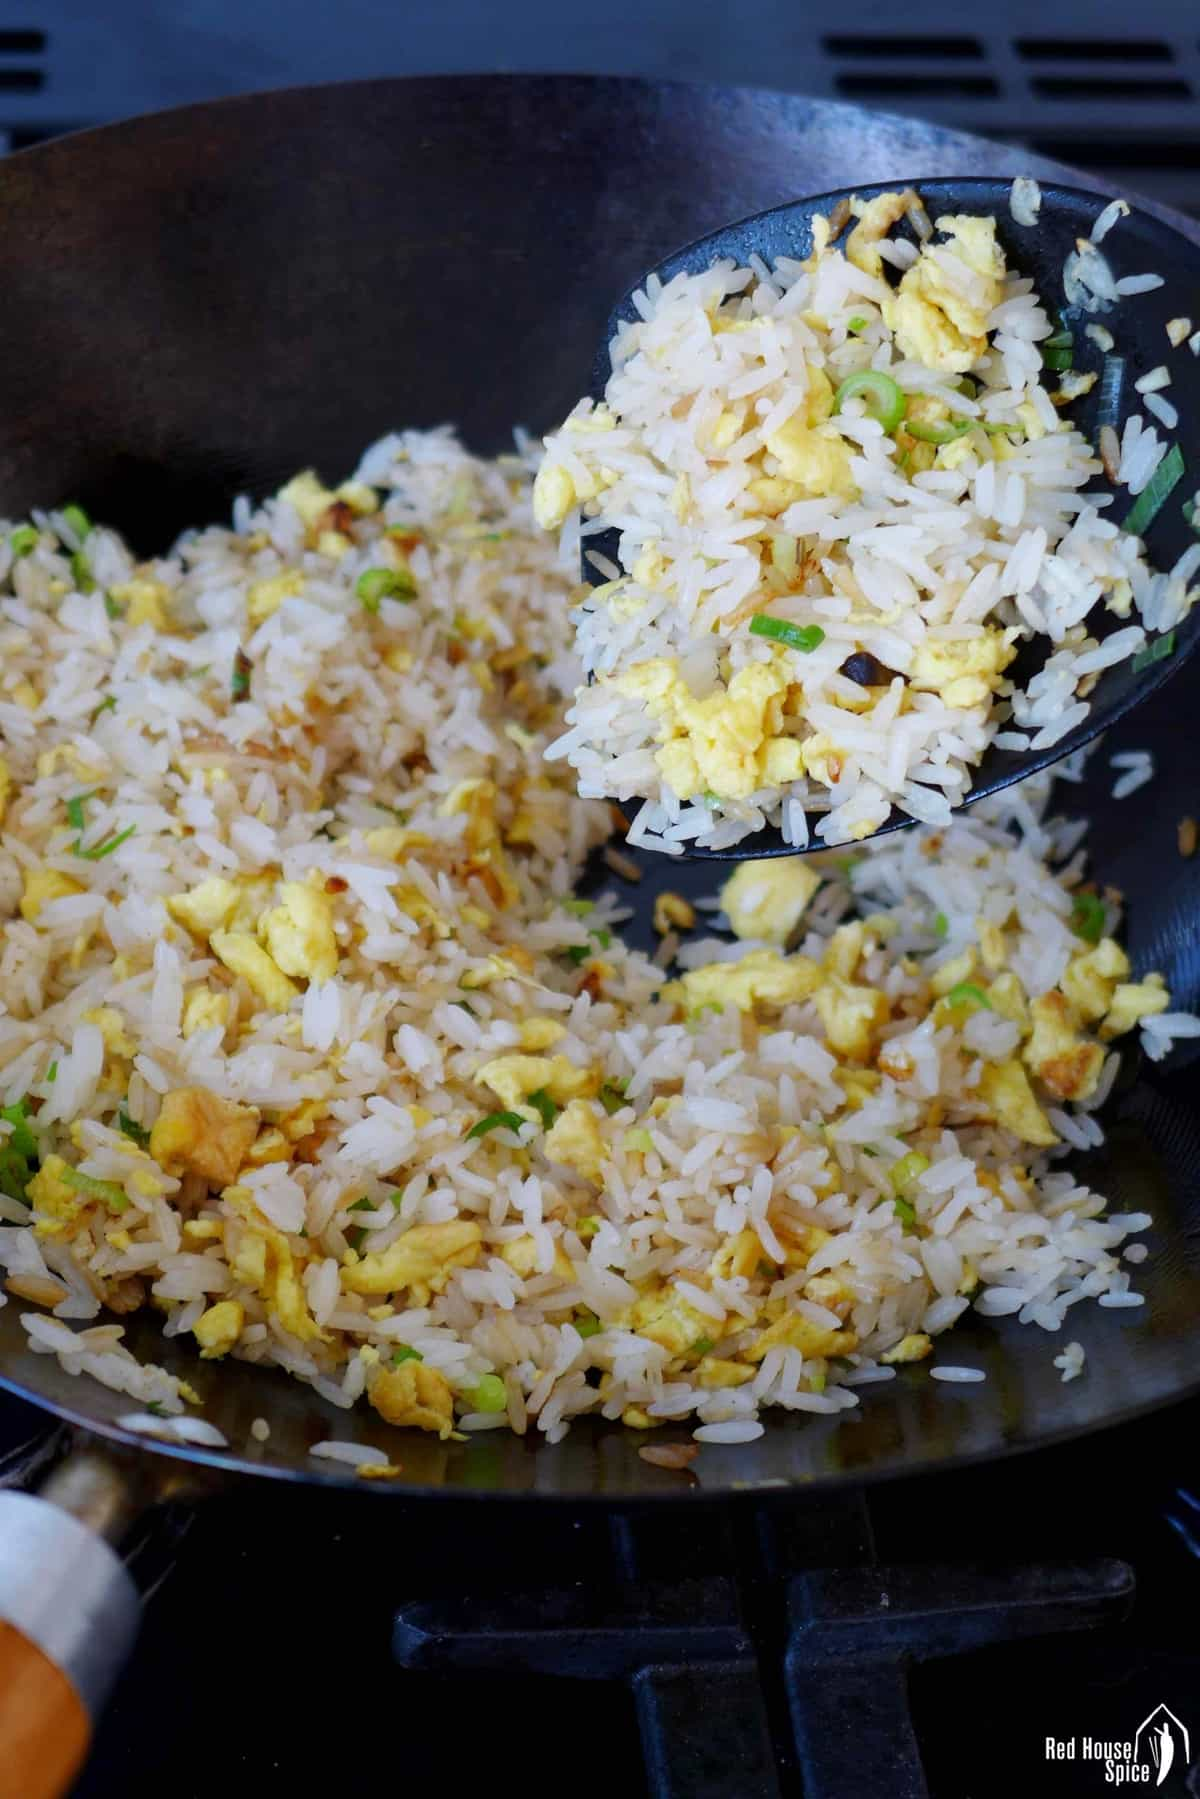 Frying egg and rice in a wok.